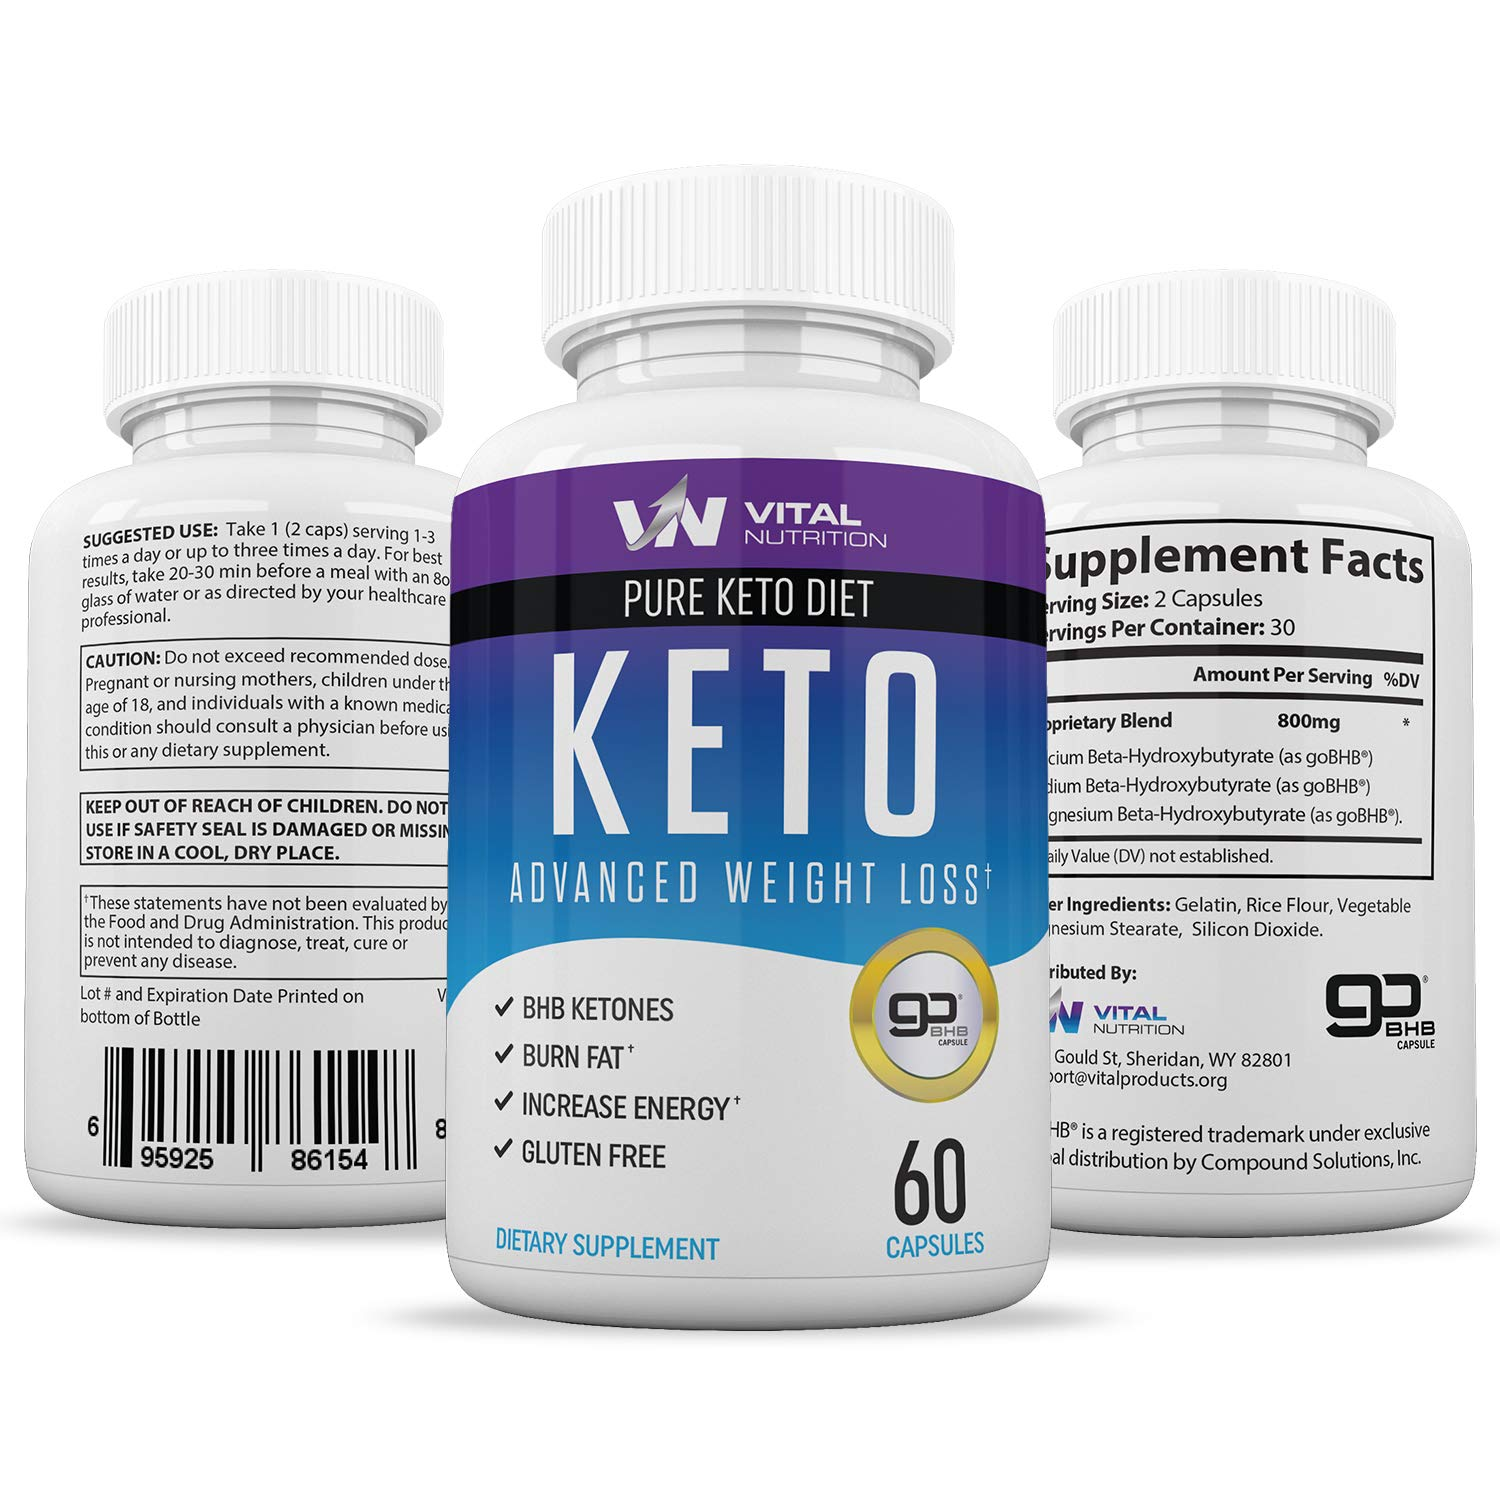 Pure Keto Diet Pills - Ketosis Supplement to Burn Fat Fast - Ketogenic Carb Blocker - Best Keto Diet Pills for Women and Men - Helps Boost Energy & Metabolism - 60 Capsules by Vital Nutrition (Image #4)